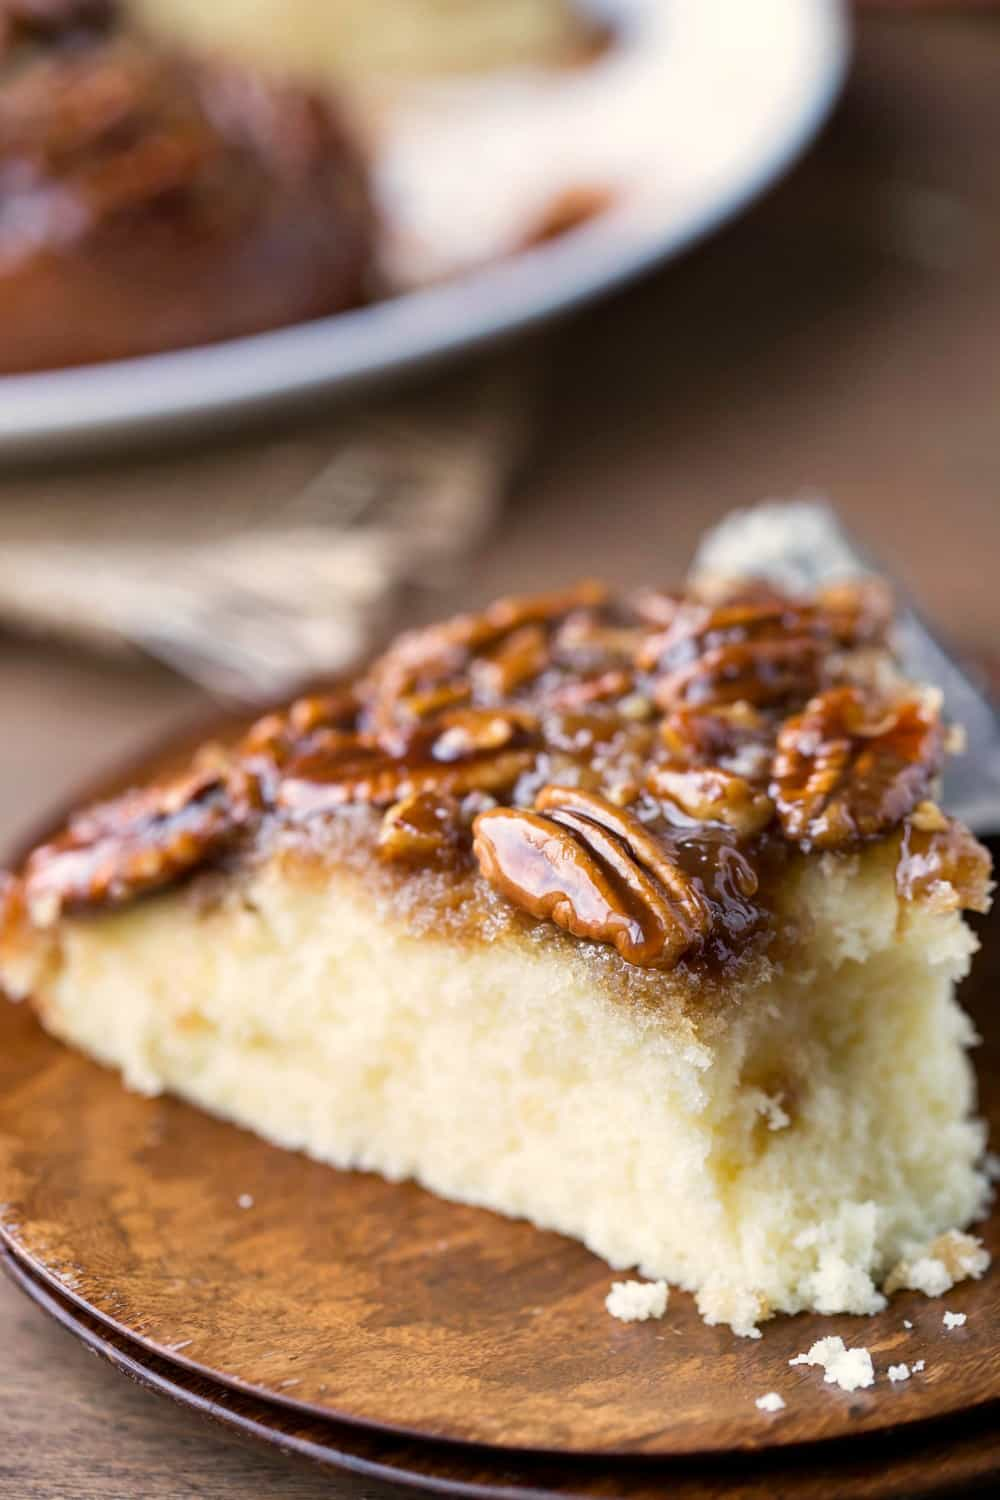 Slice of Pecan Pie Upside-Down Cake on a wooden plate with a bite missing